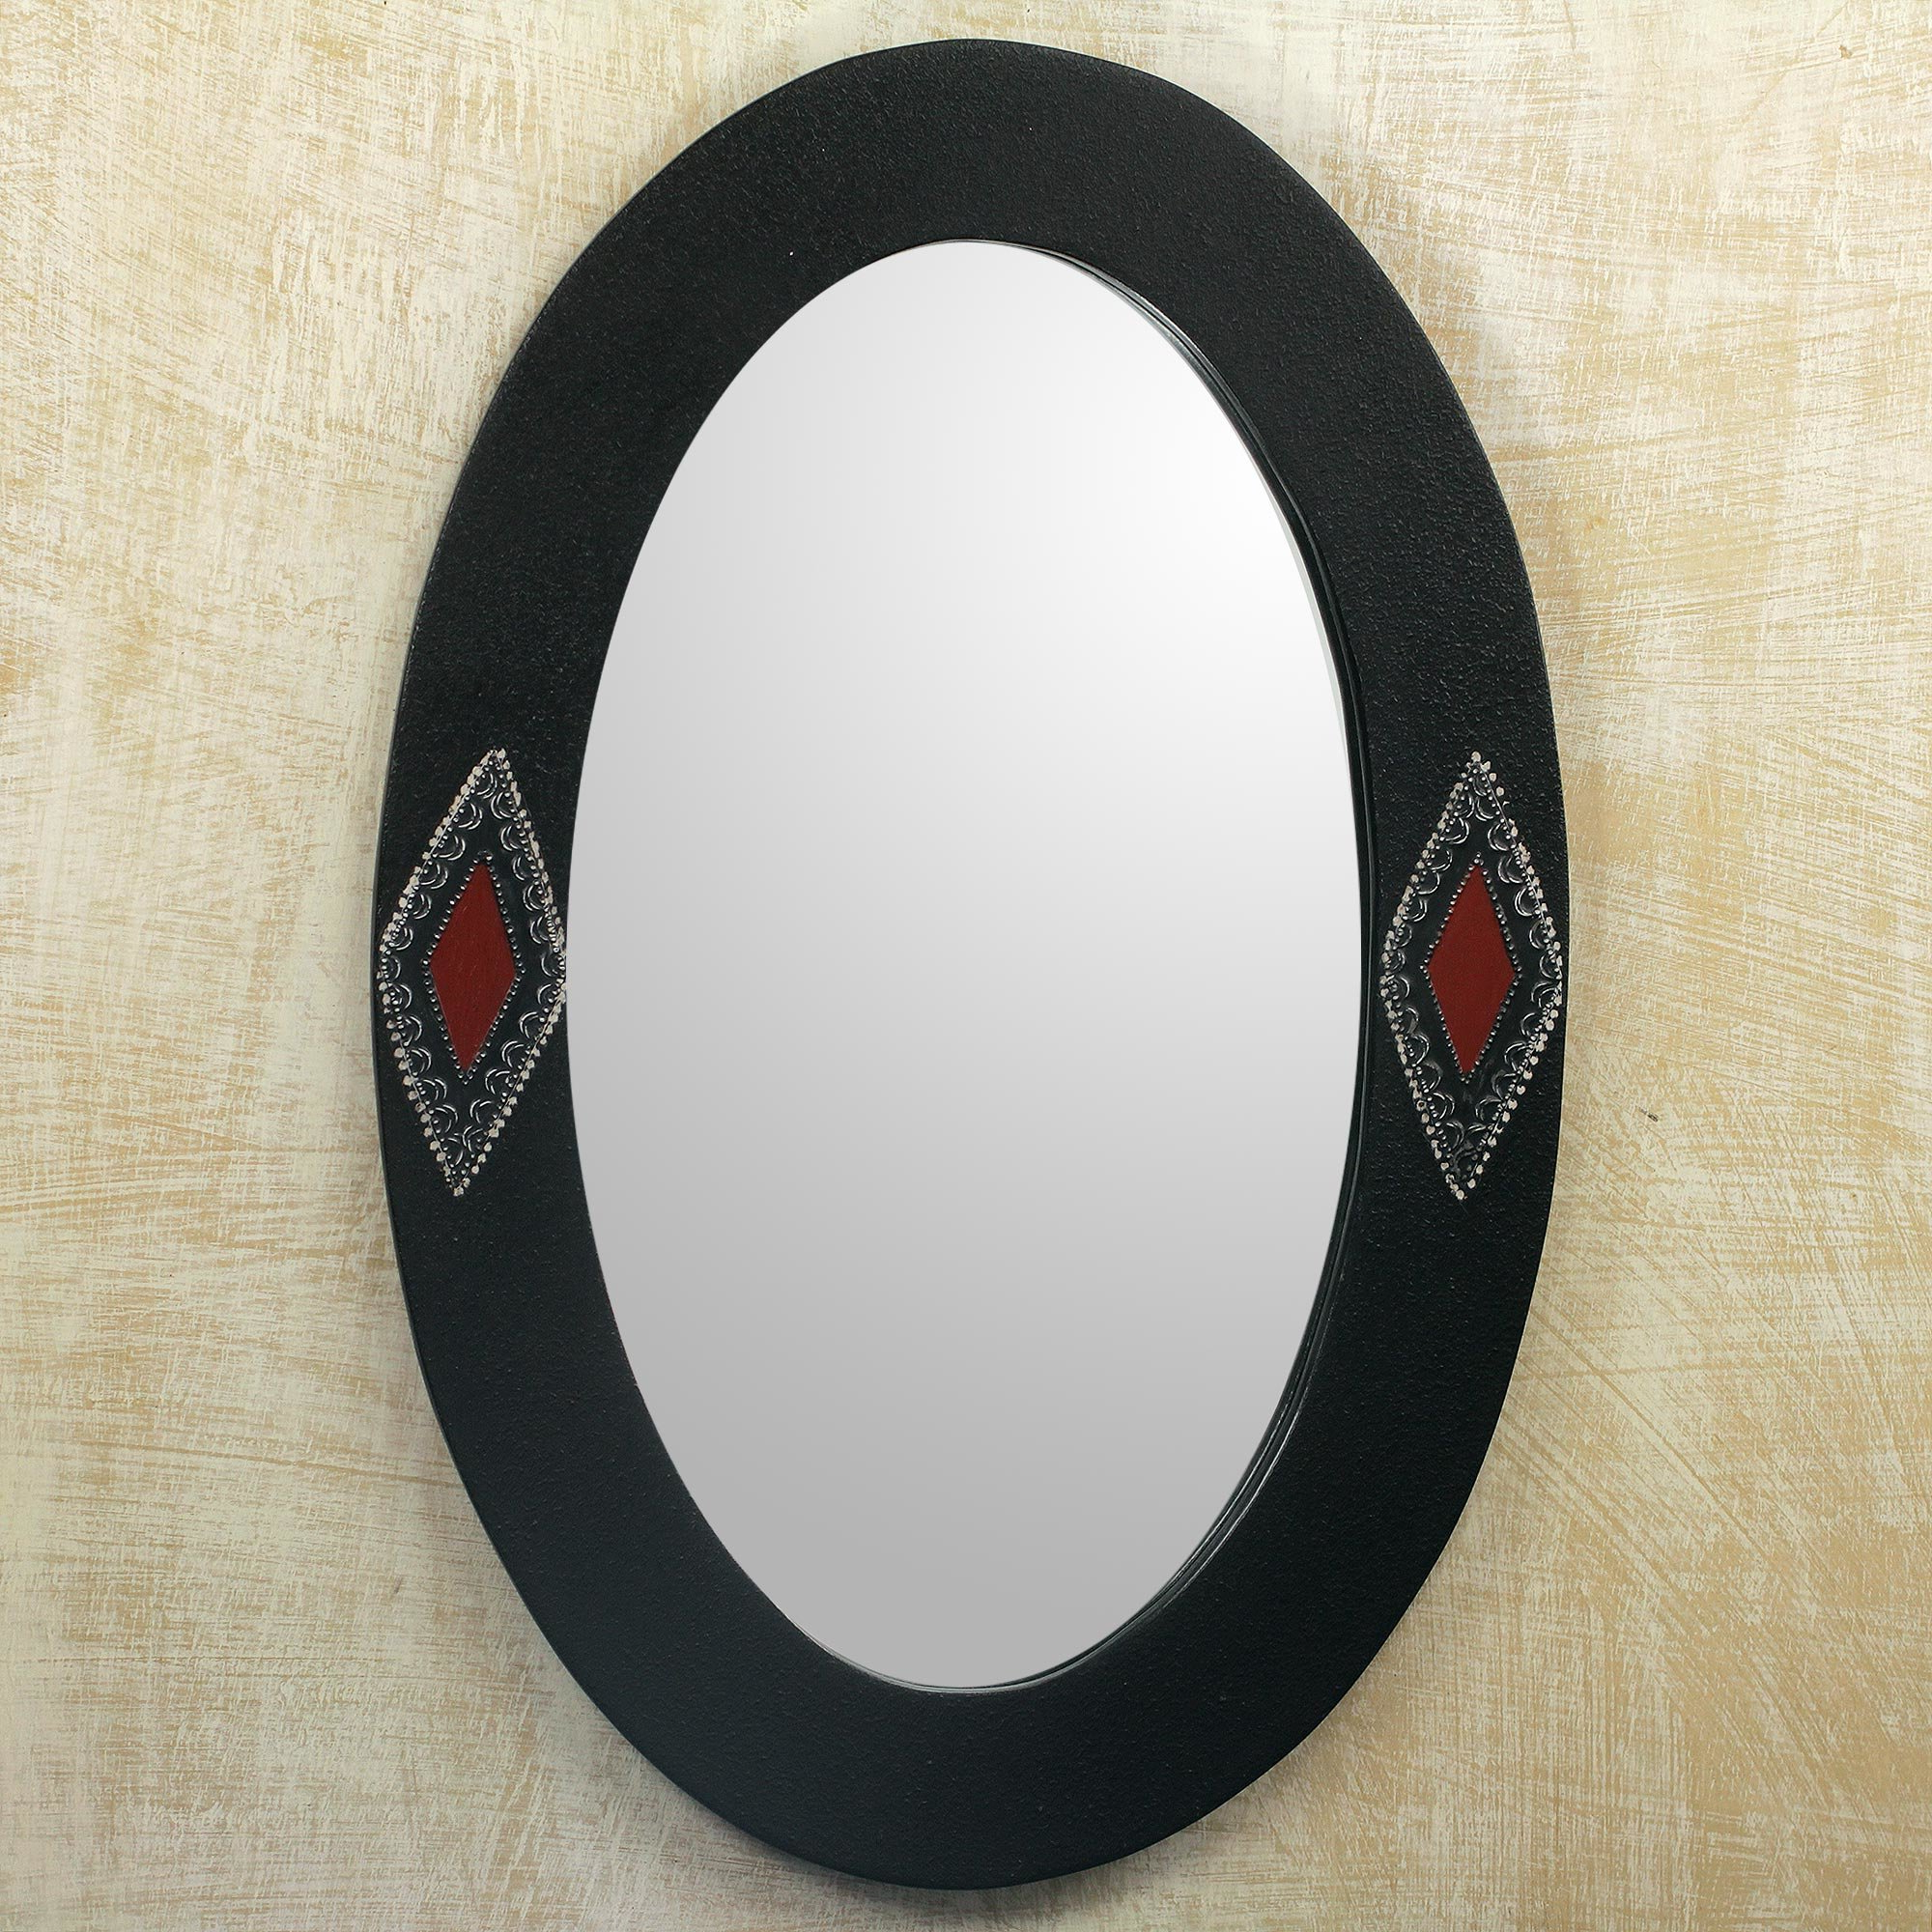 Diamond Eyes Oval Shaped Electric Wall Mirror Pertaining To Current Oval Shaped Wall Mirrors (View 4 of 20)